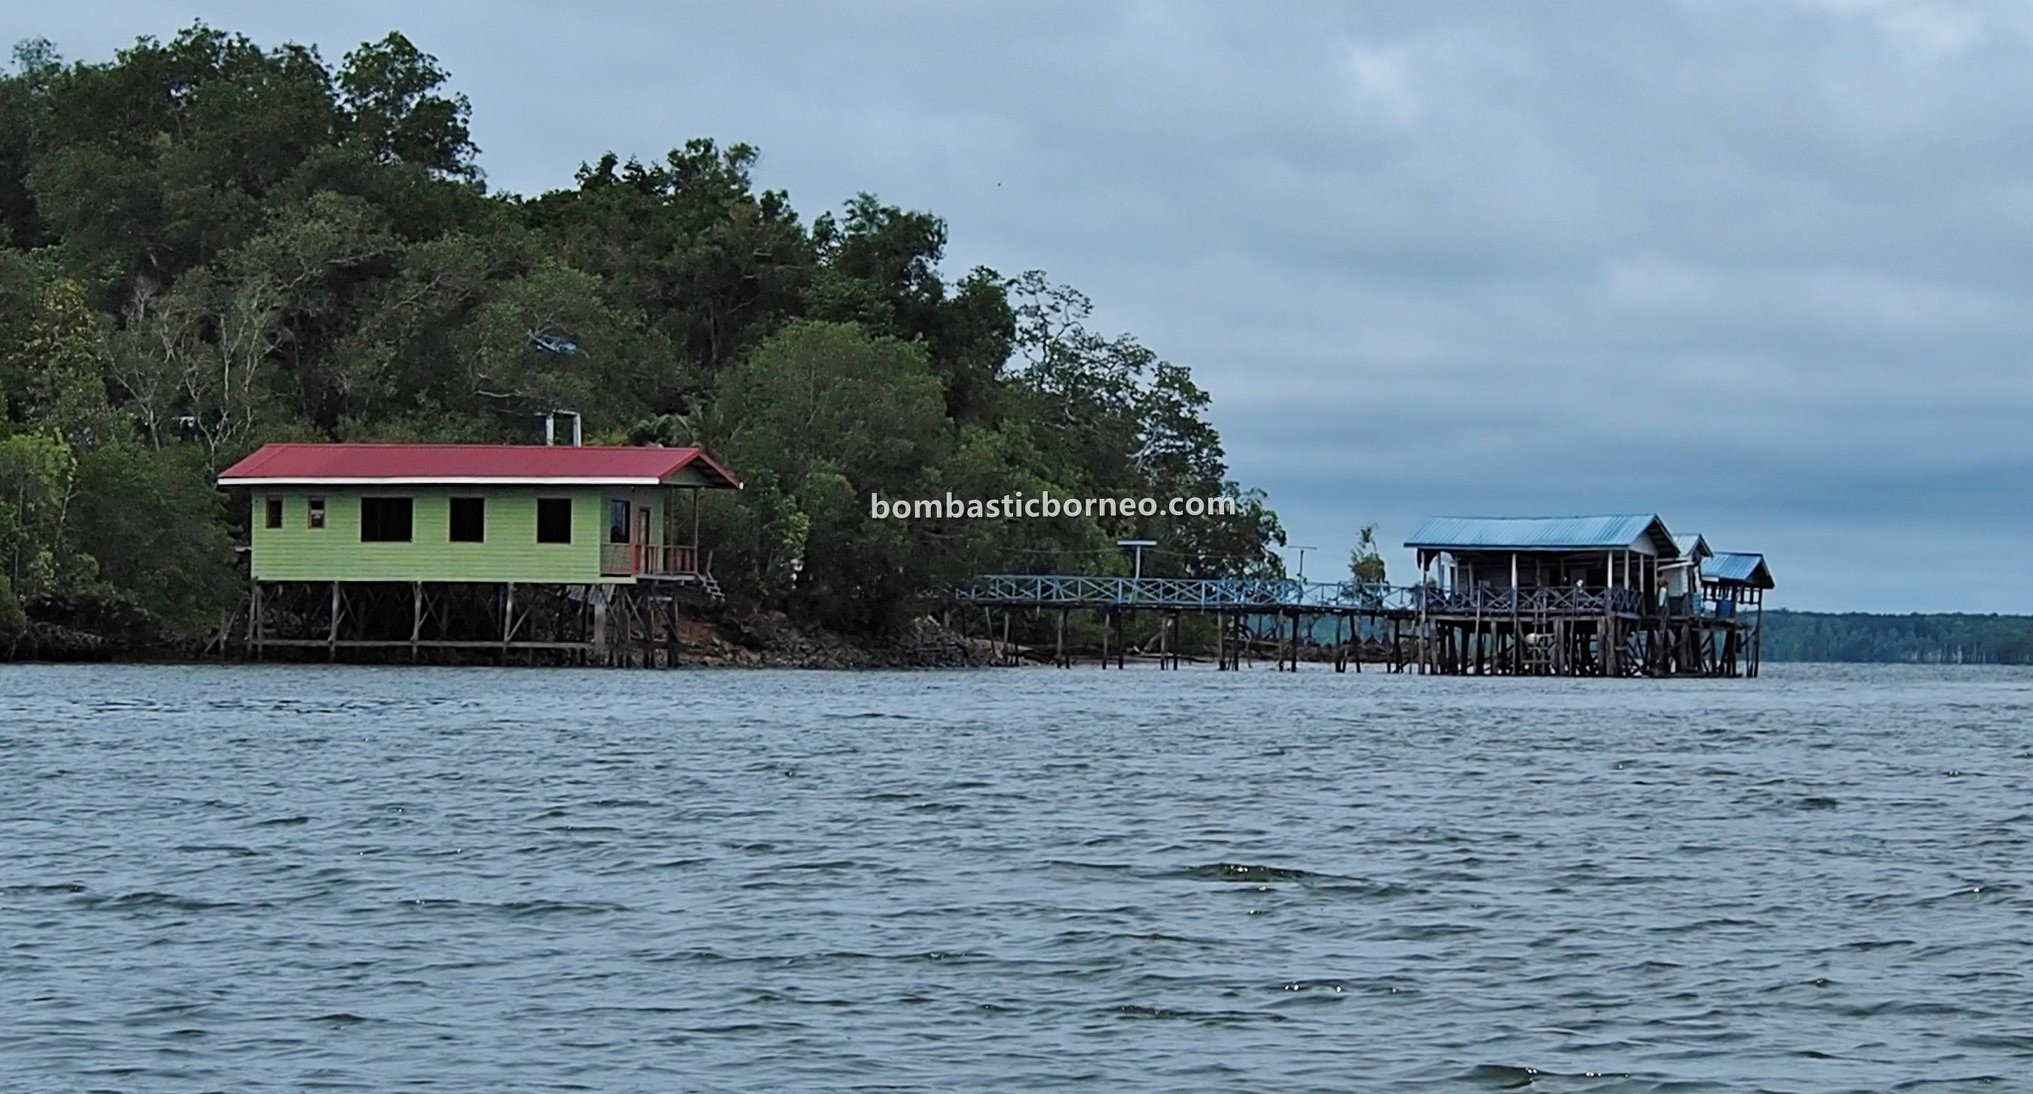 Polis, Pulau, boat ride, jelajah, exploration, adventure, backpackers, mangrove forest, Monyet Belanda, tourism, Trans Border, Borneo, 跨境婆罗洲游踪, 马来西亚沙巴斗湖